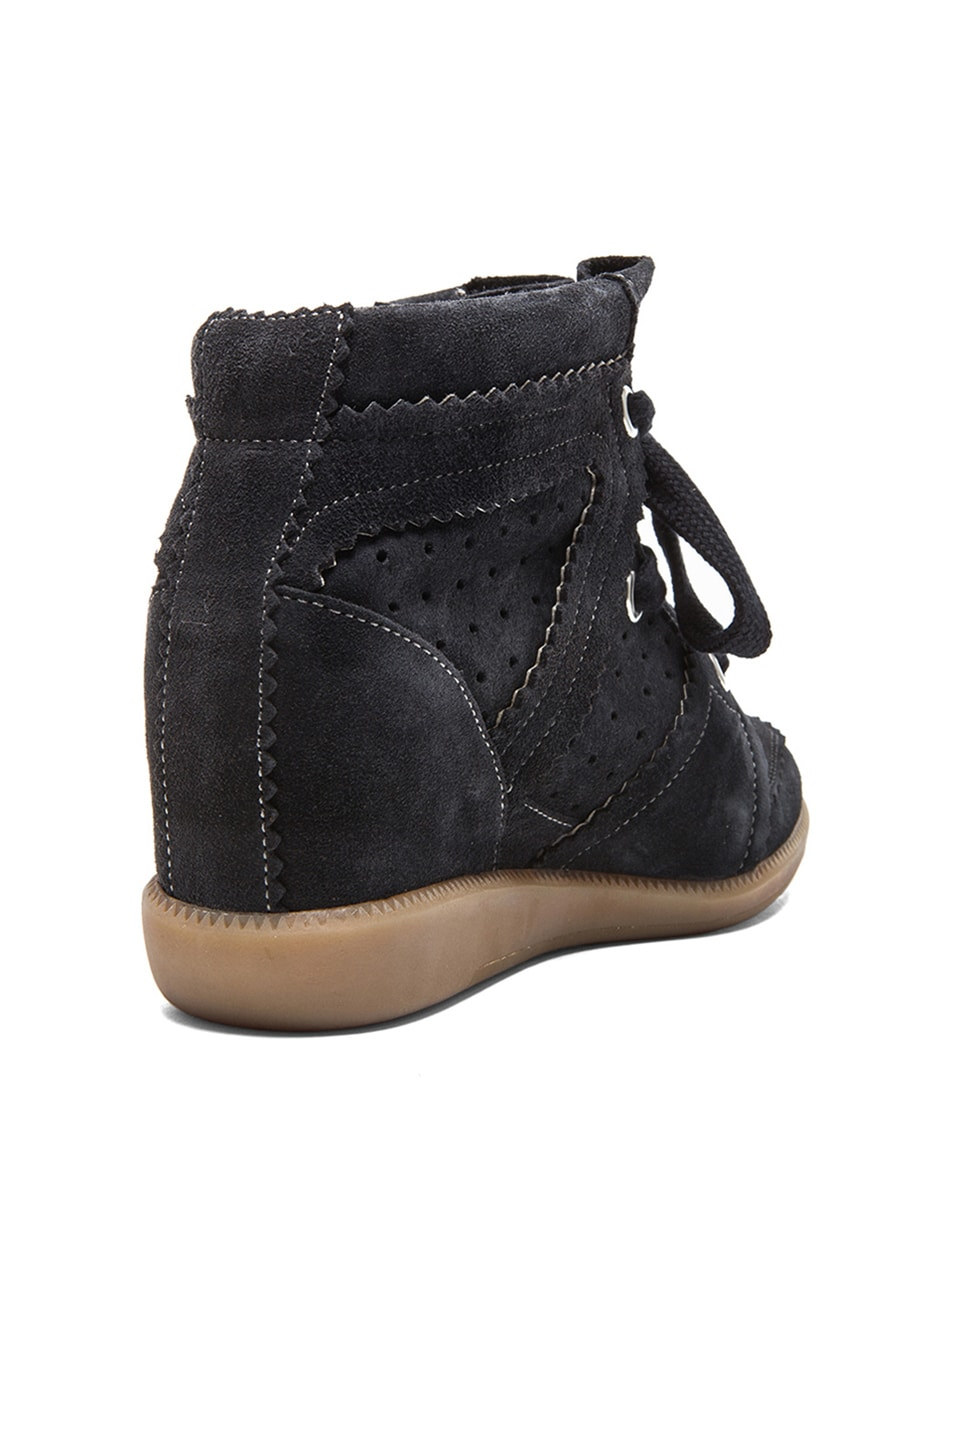 Image 3 of Isabel Marant Bobby Calfkin Velvet Leather Sneakers in Anthracite